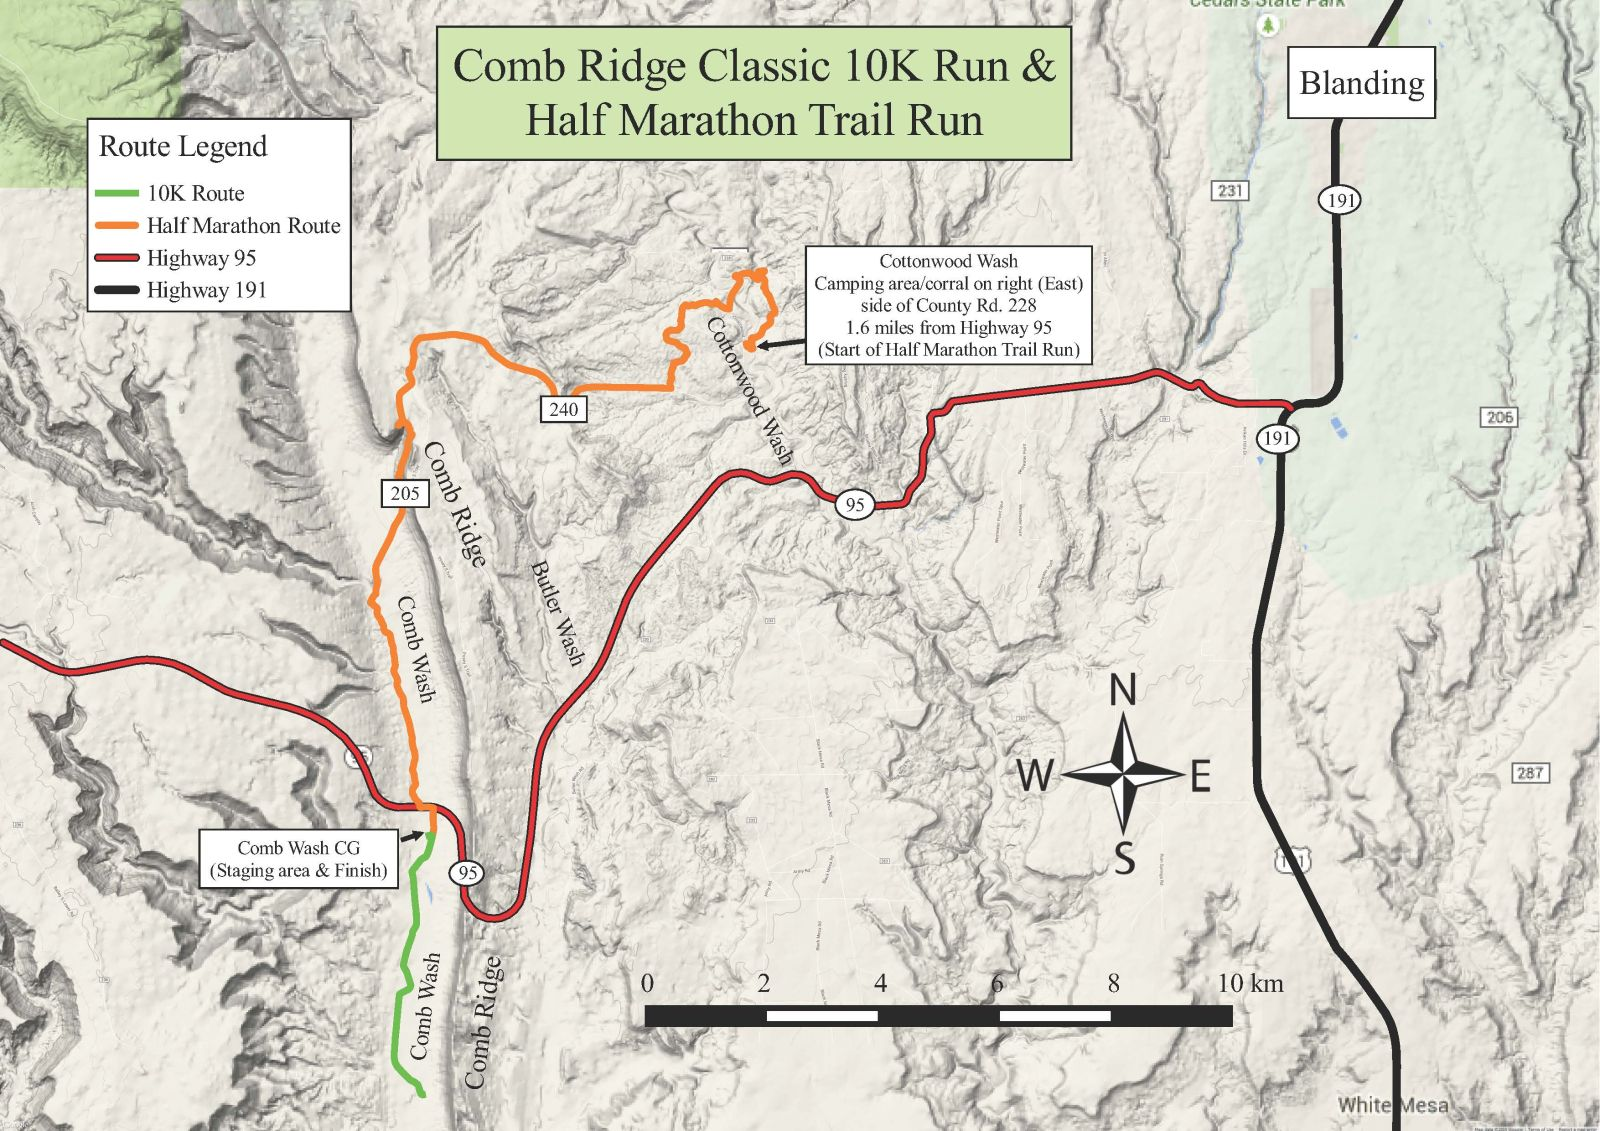 Comb Ridge Classic – Half Marathon and 10K Trail Run